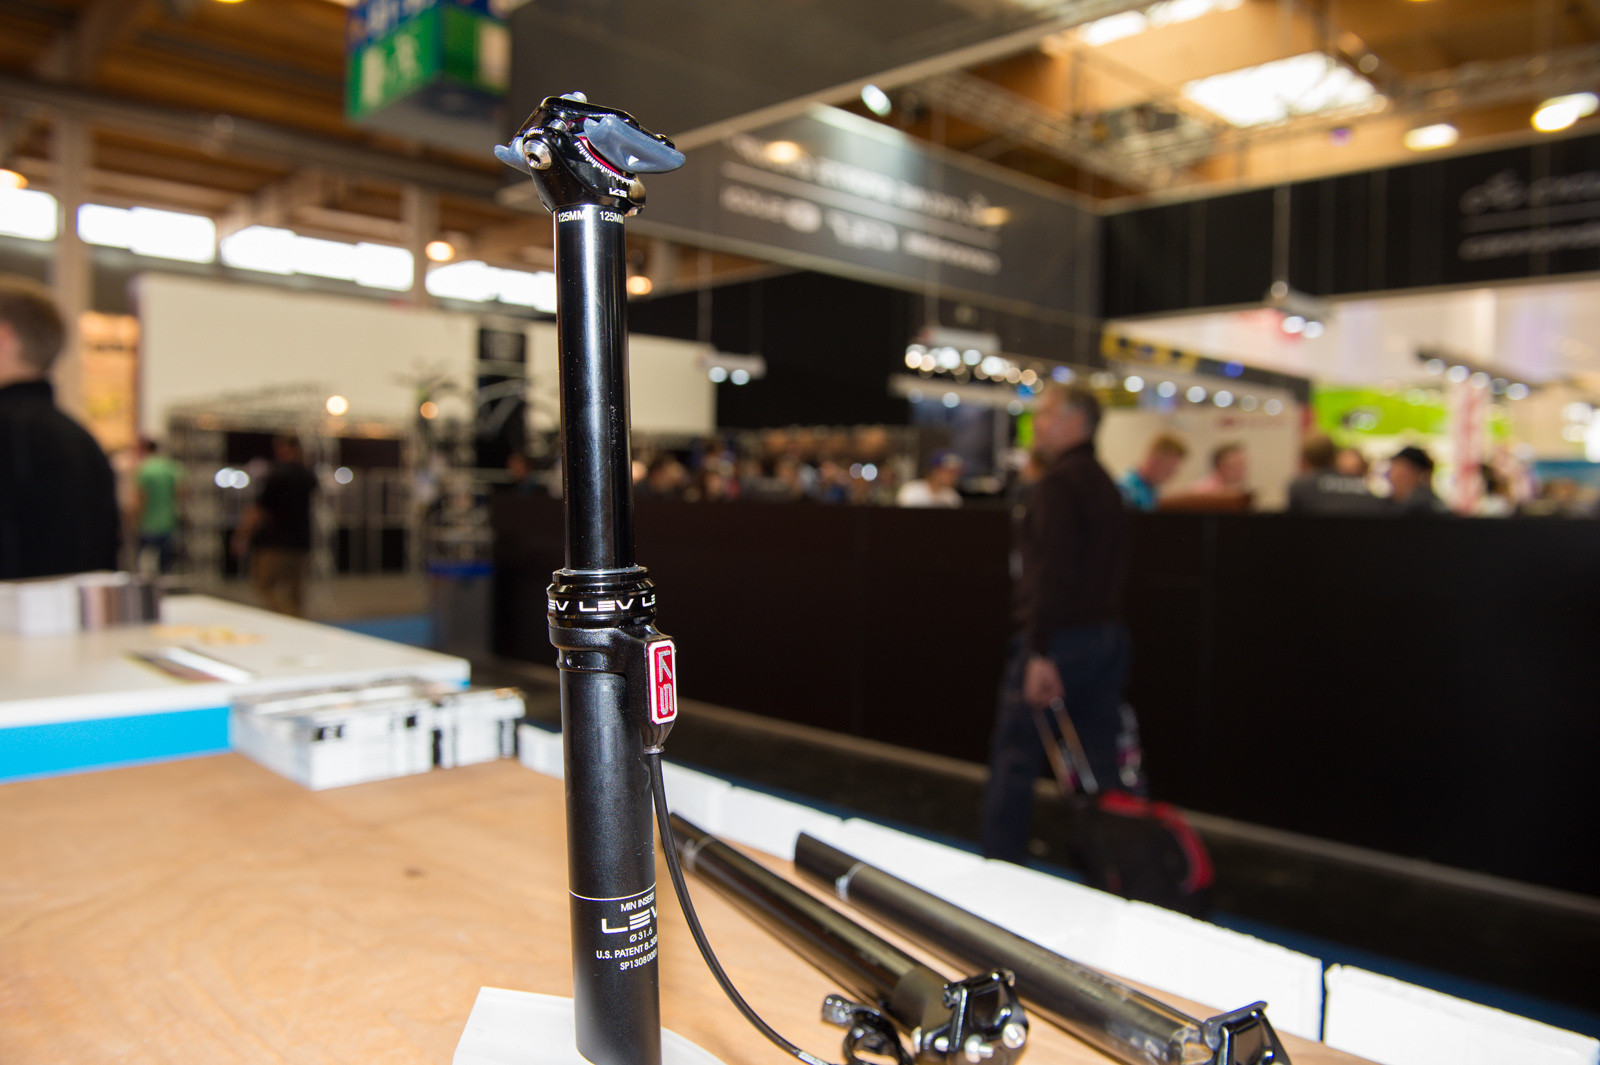 KS LEV - 2014 Mountain Bike Components at Eurobike 2013 - Mountain Biking Pictures - Vital MTB